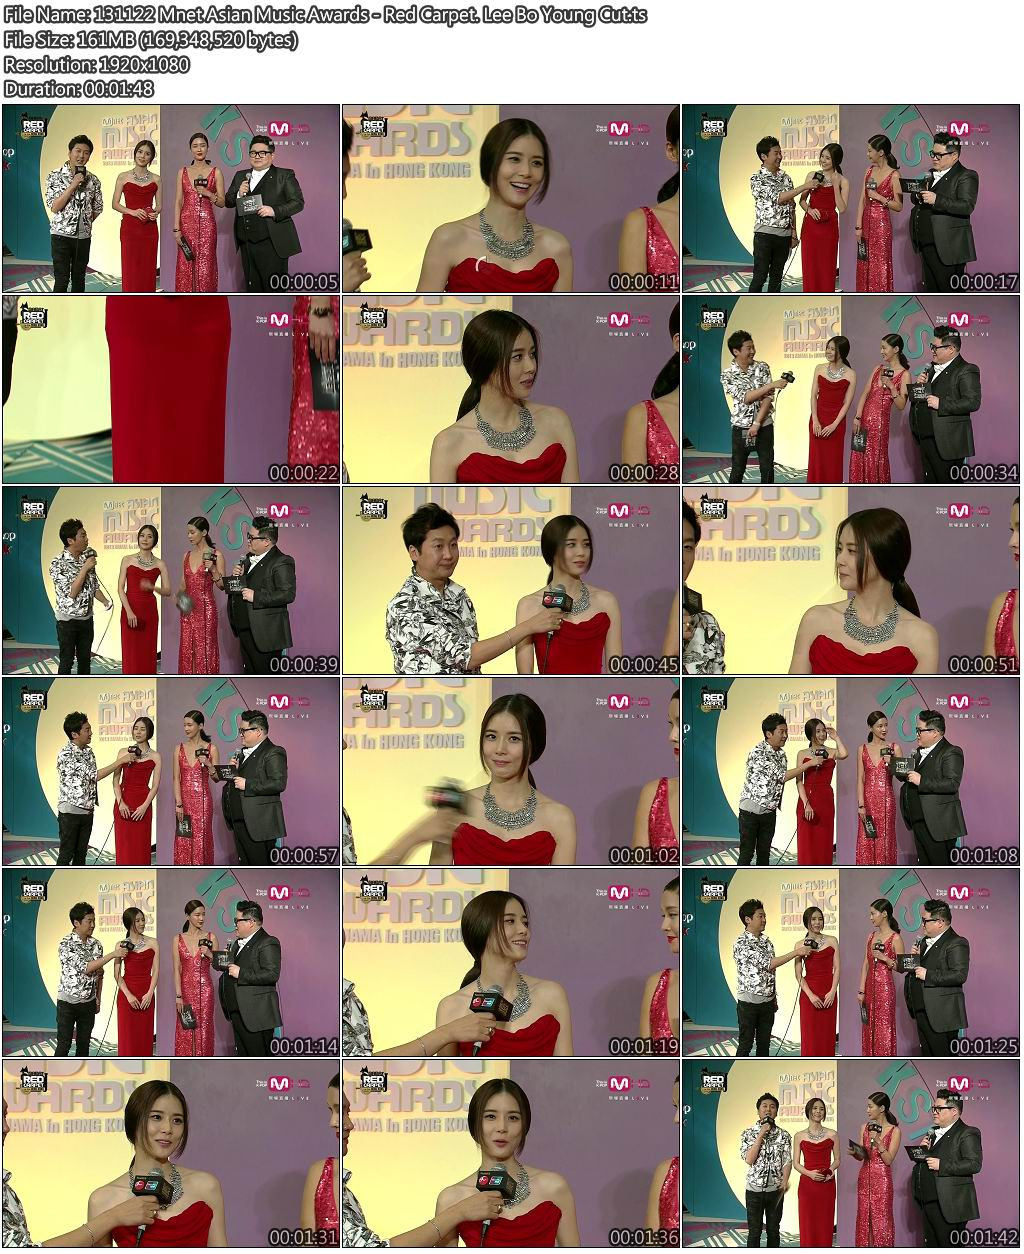 131122 Mnet Asian Music Awards - Red Carpet. Lee Bo Young Cut.jpg